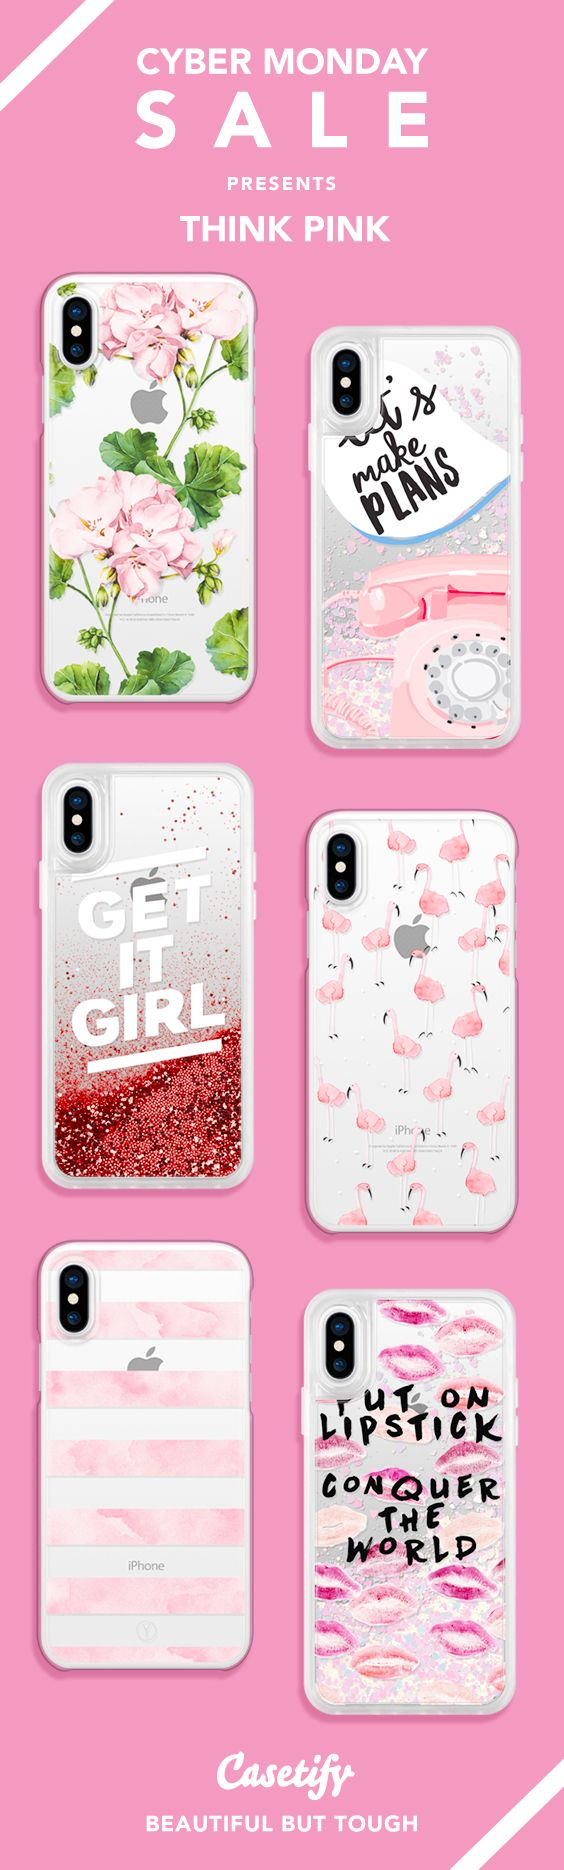 Cyber Monday Special: GET 30% up to OFF! Most Wanted Pink iPhone X, iPhone 8, iPhone 8 plus, iPhone 7, iPhone 7 Plus case. - Shop them here ☝️☝️☝️ BEAUTIFUL BUT TOUGH ✨  - fashion, illustrators, illustrations, fashionista, pink, girly, cute, lipstick, floral, quote, marble, flamingo